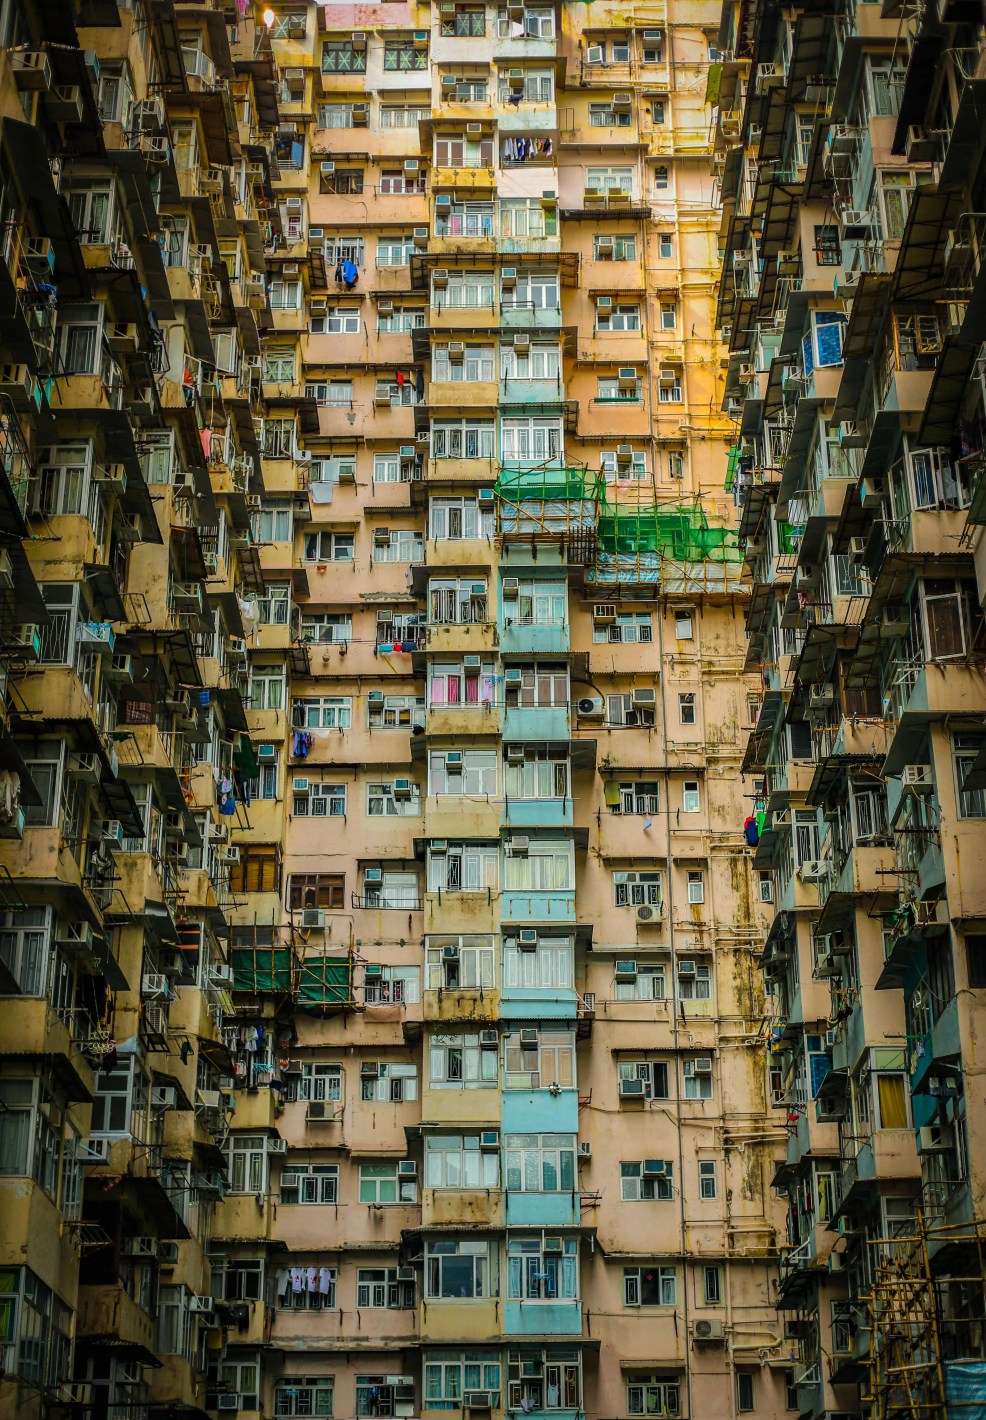 Instagrammable Places in Hong Kong, Quarry Bay